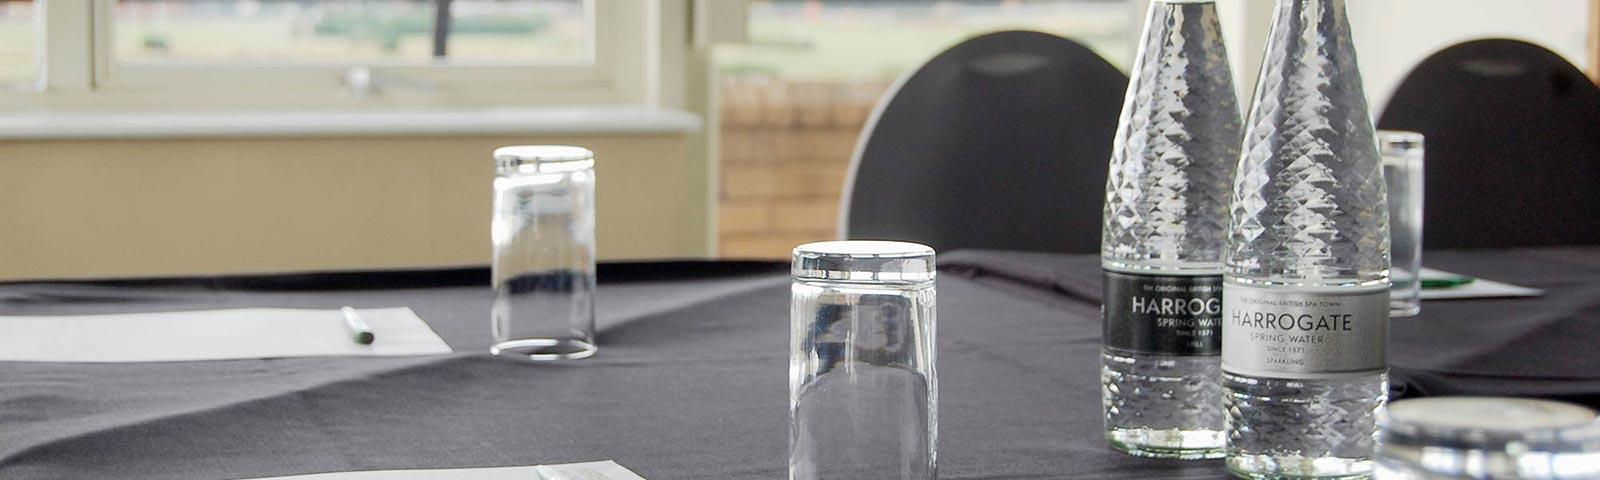 Close up on a table set up for a meeting with pens, paper, bottles of water.